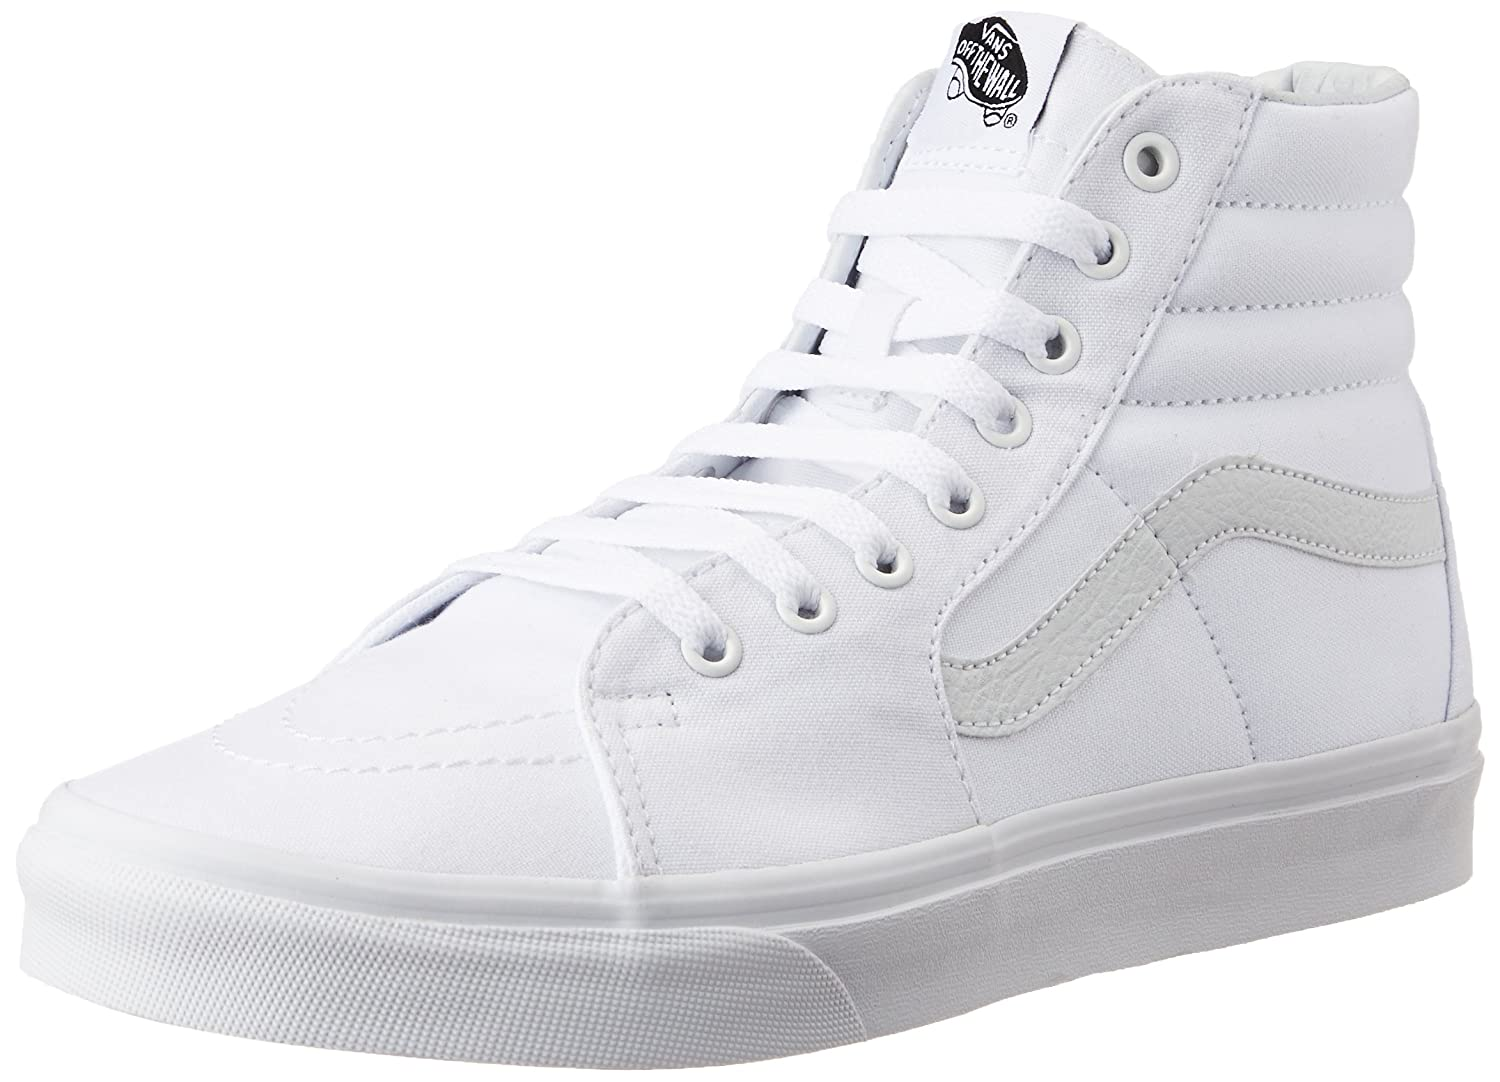 ff7edf46c3 Vans Unisex Sk8-Hi Sneakers  Buy Online at Low Prices in India - Amazon.in